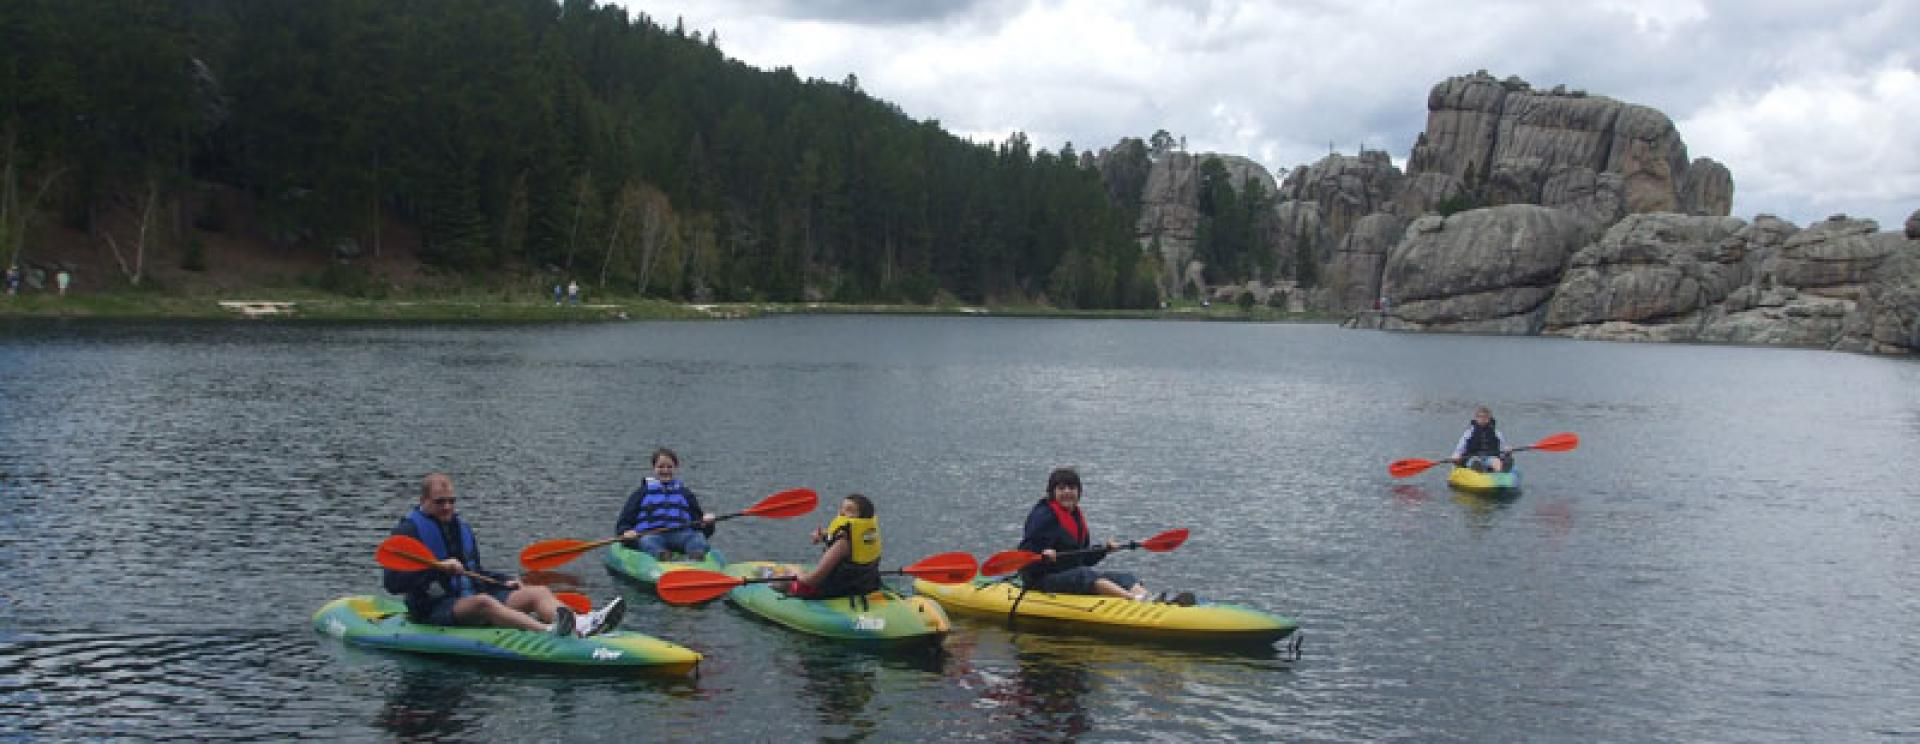 Black Hills Adventure Tours & Vacation Planning